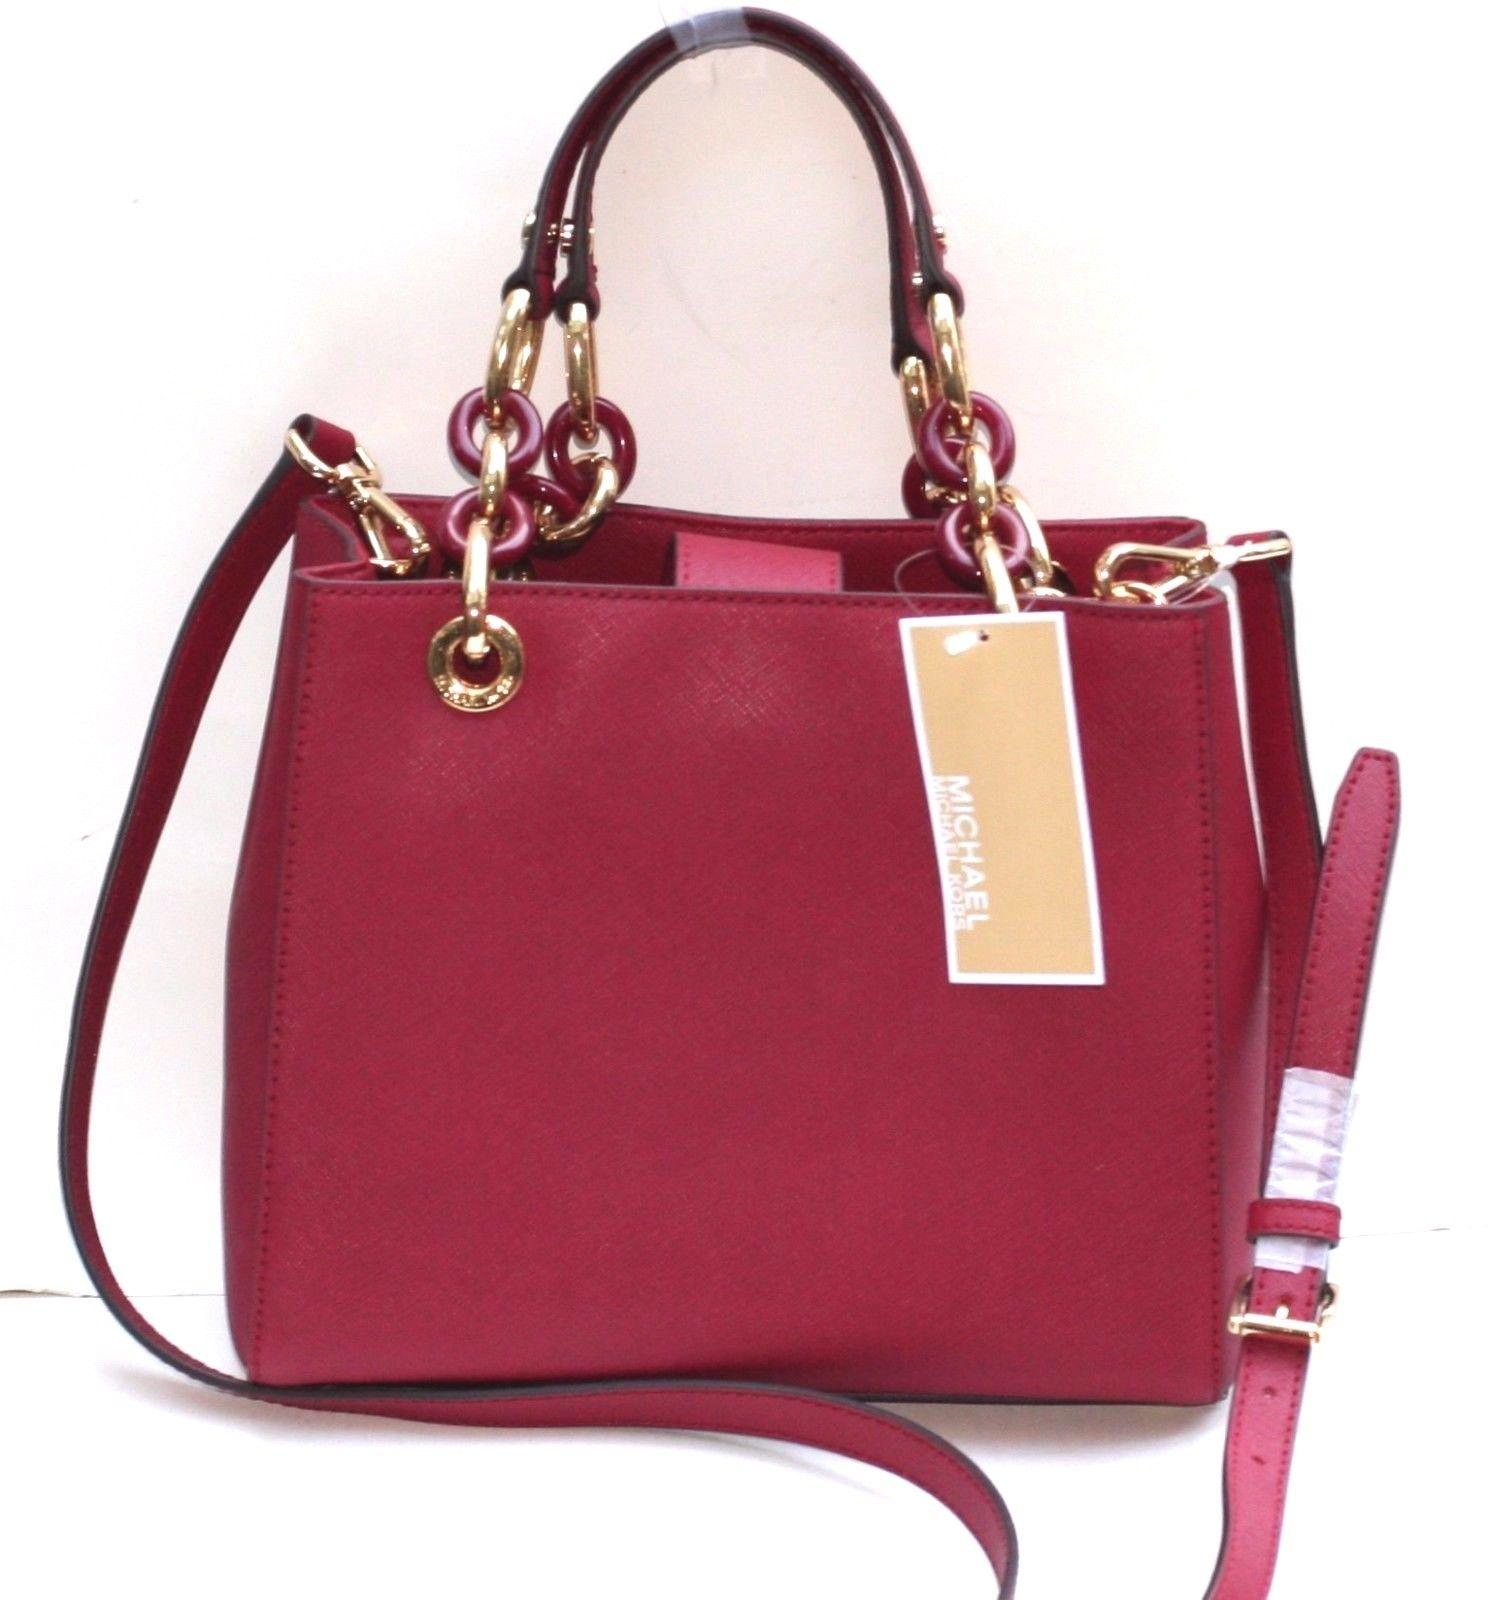 0cc2cb6fd06b ... spain michael kors small cynthia north south saffiano leather satchel  in red cherry.